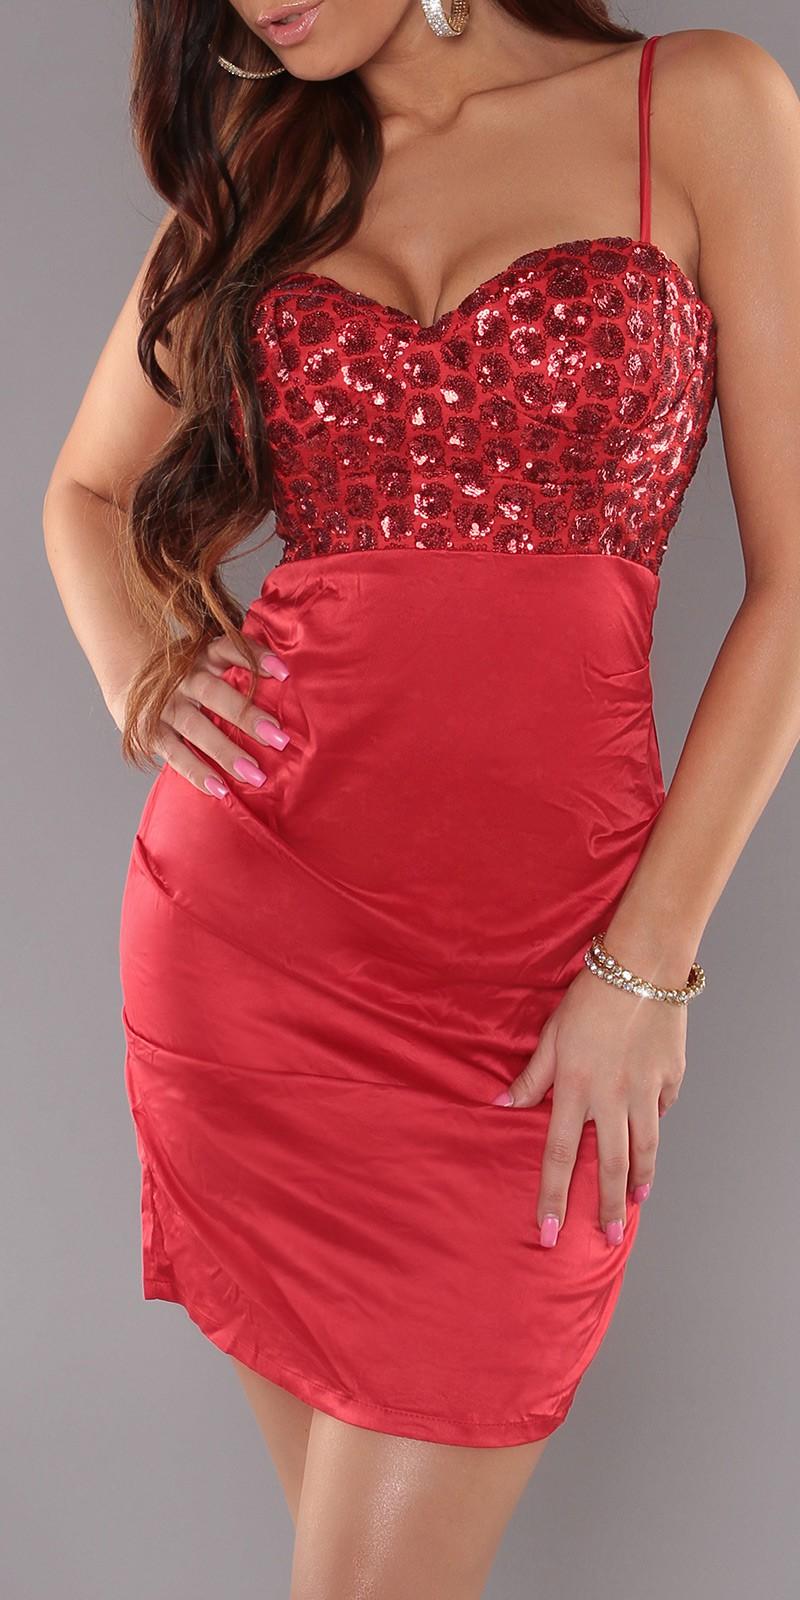 Red Sexy Cocktail Dress With Sequins